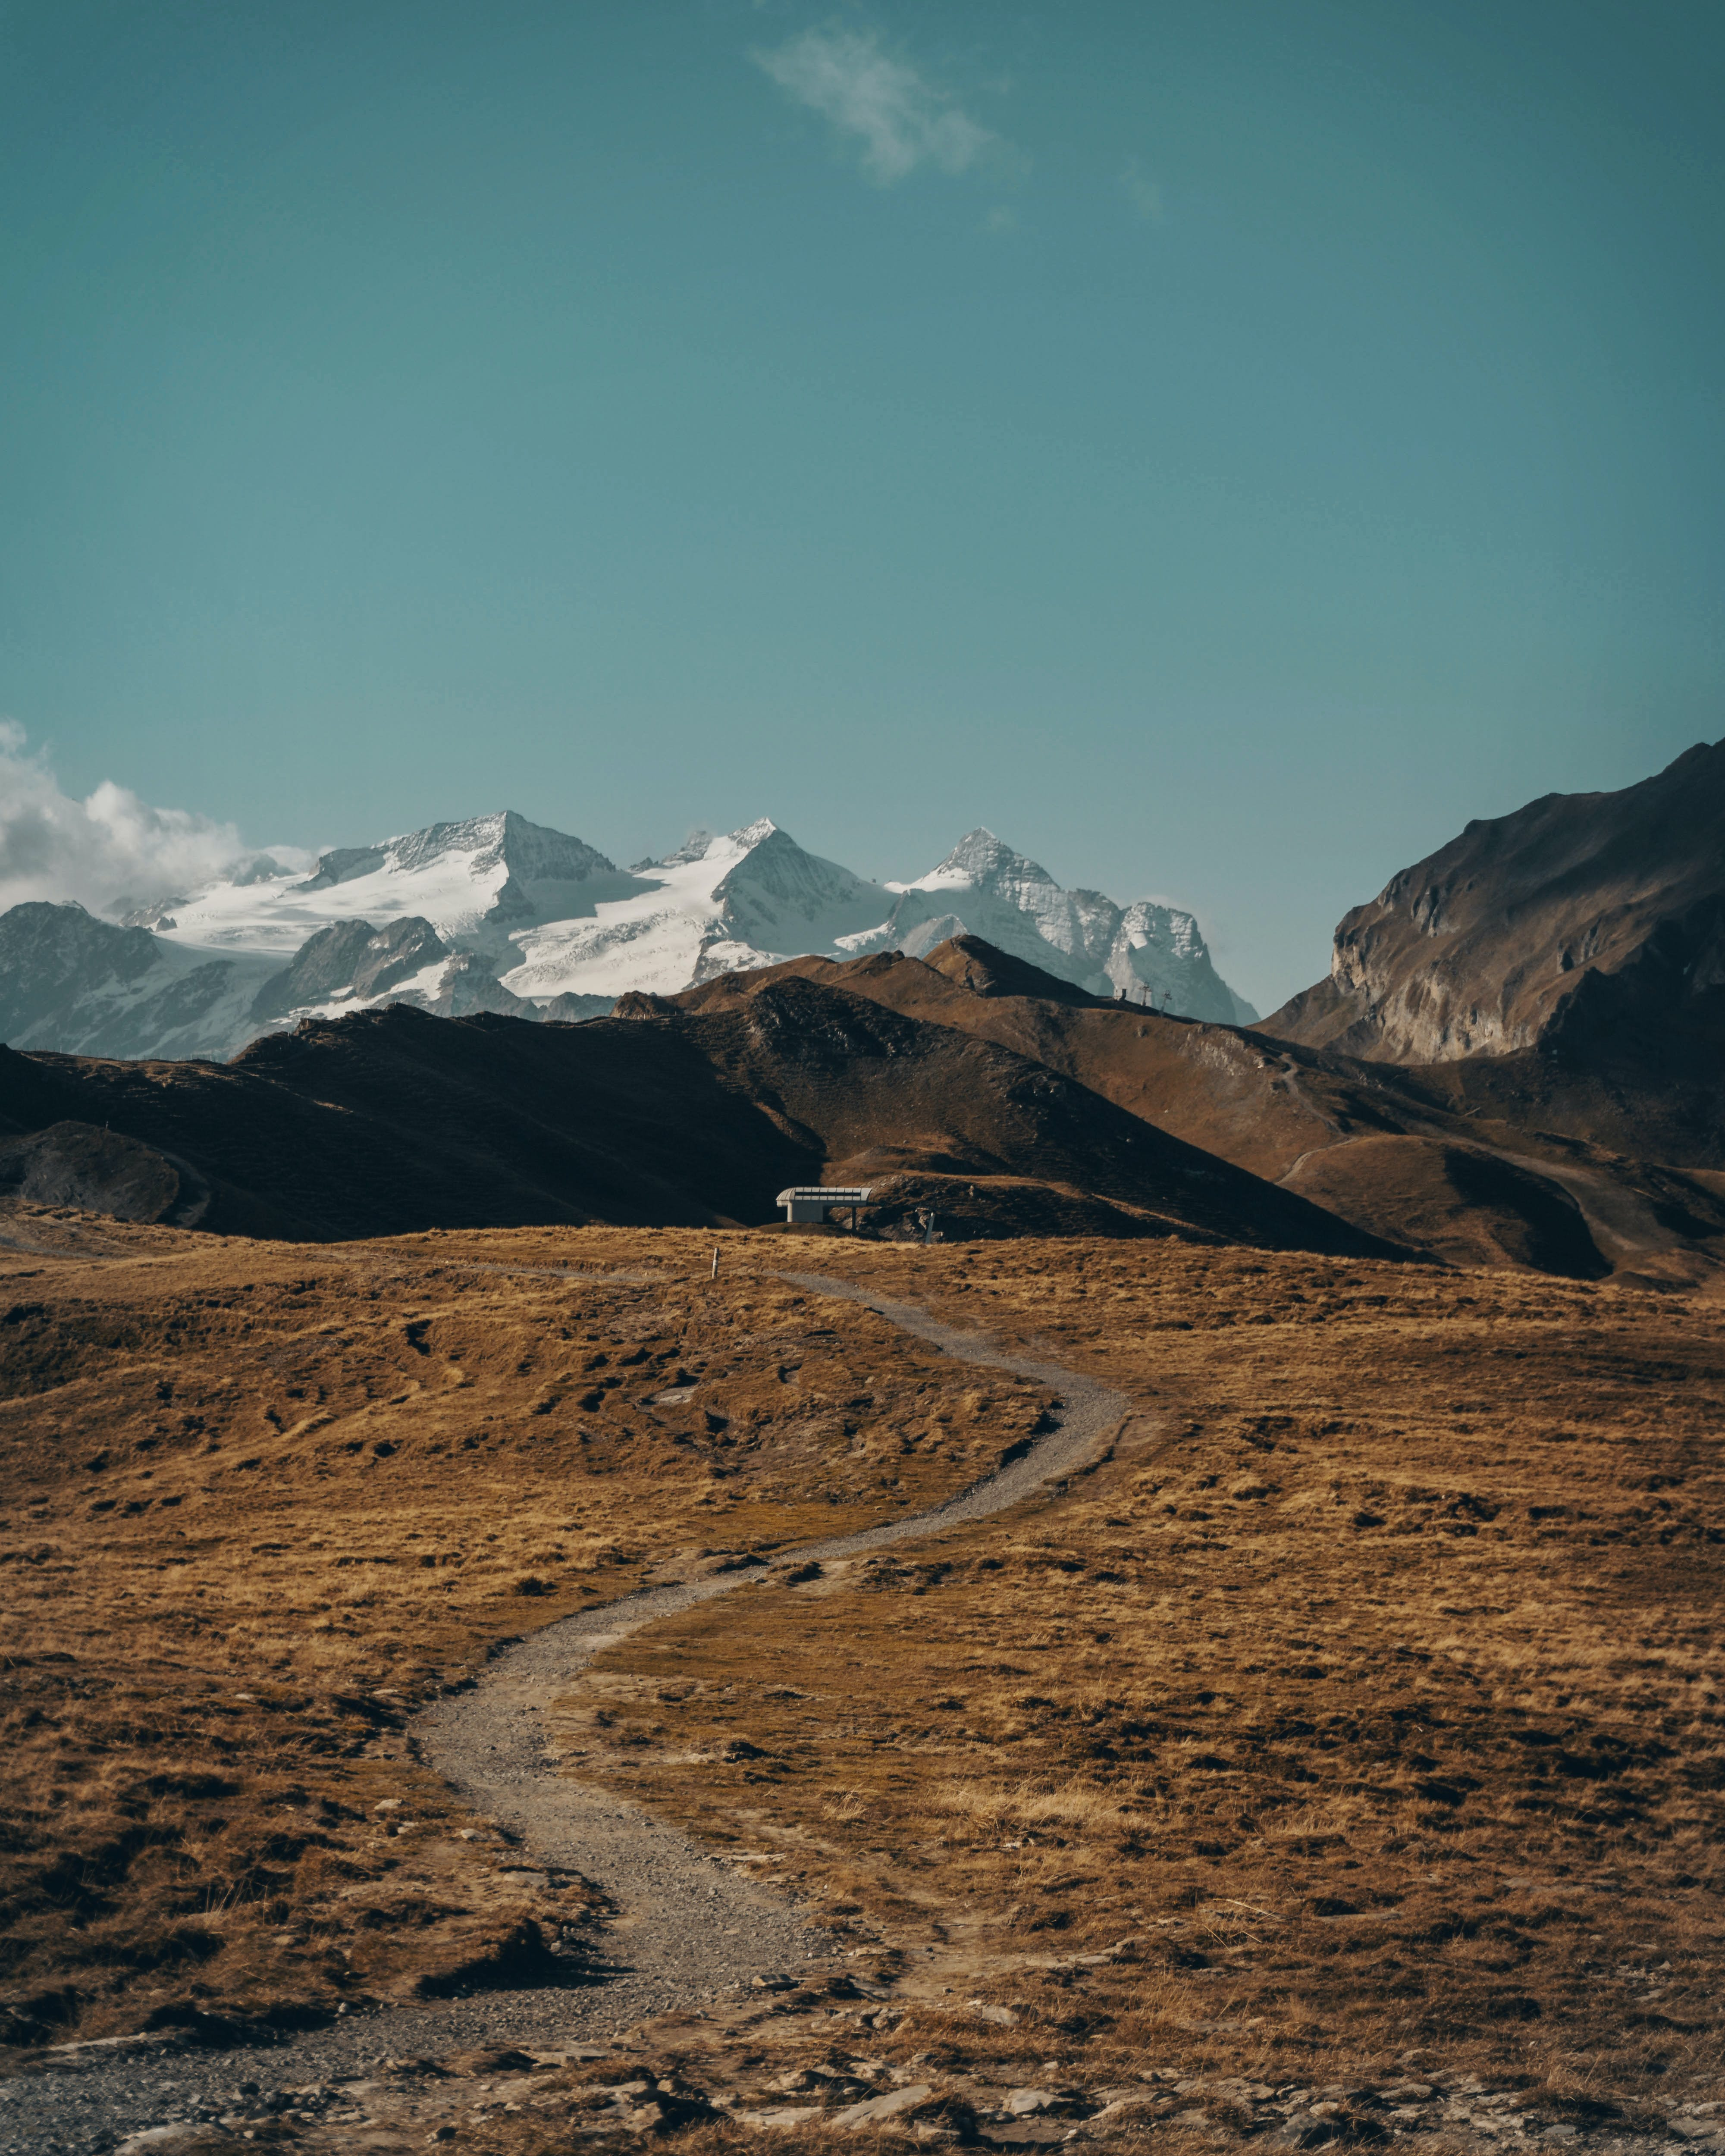 Free stock photo of landscape, landscapes, mountain, mountains